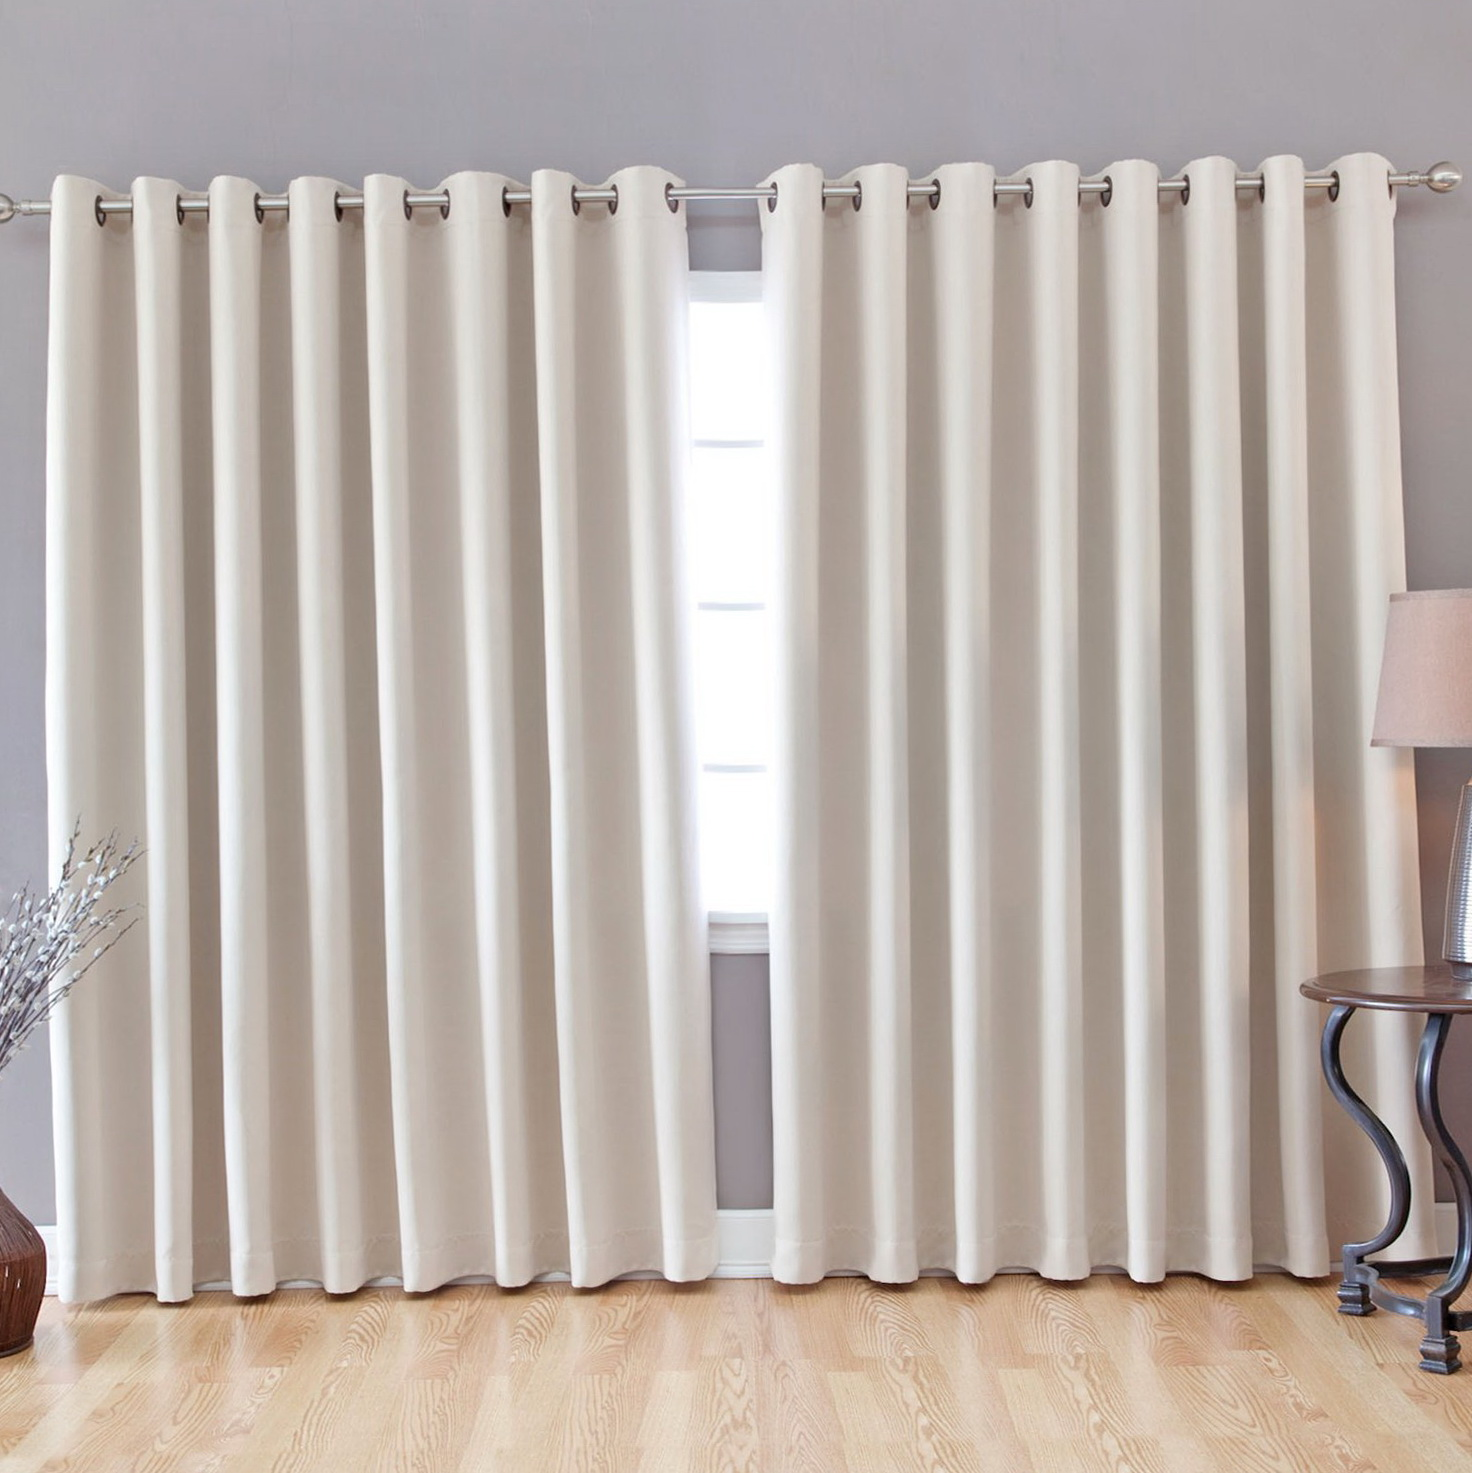 Best Curtains For Wide Windows Home Design Ideas